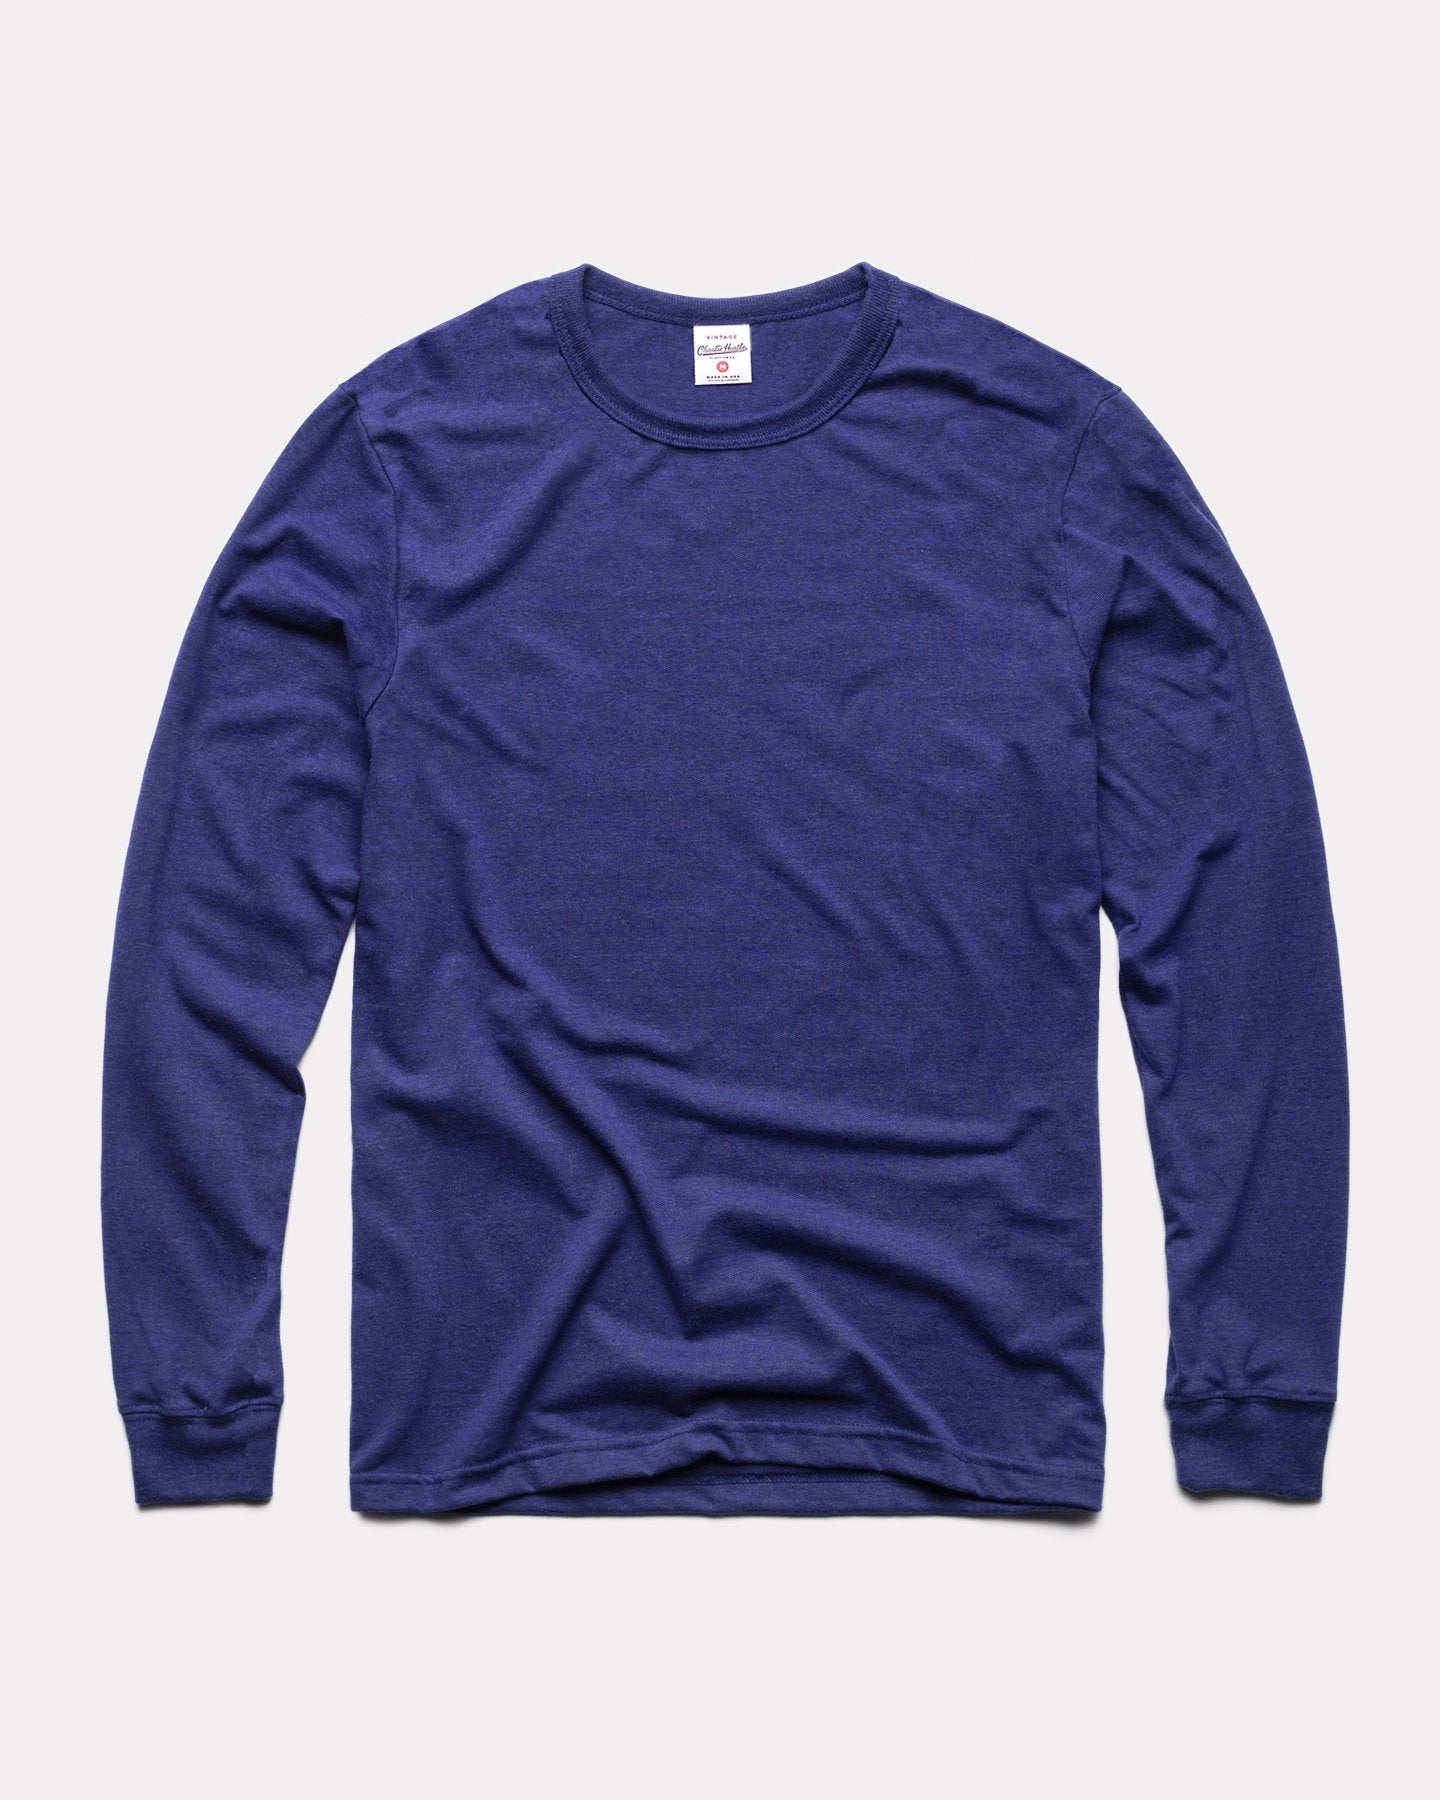 Navy Long Sleeve Essentials Collection Vintage T-Shirt